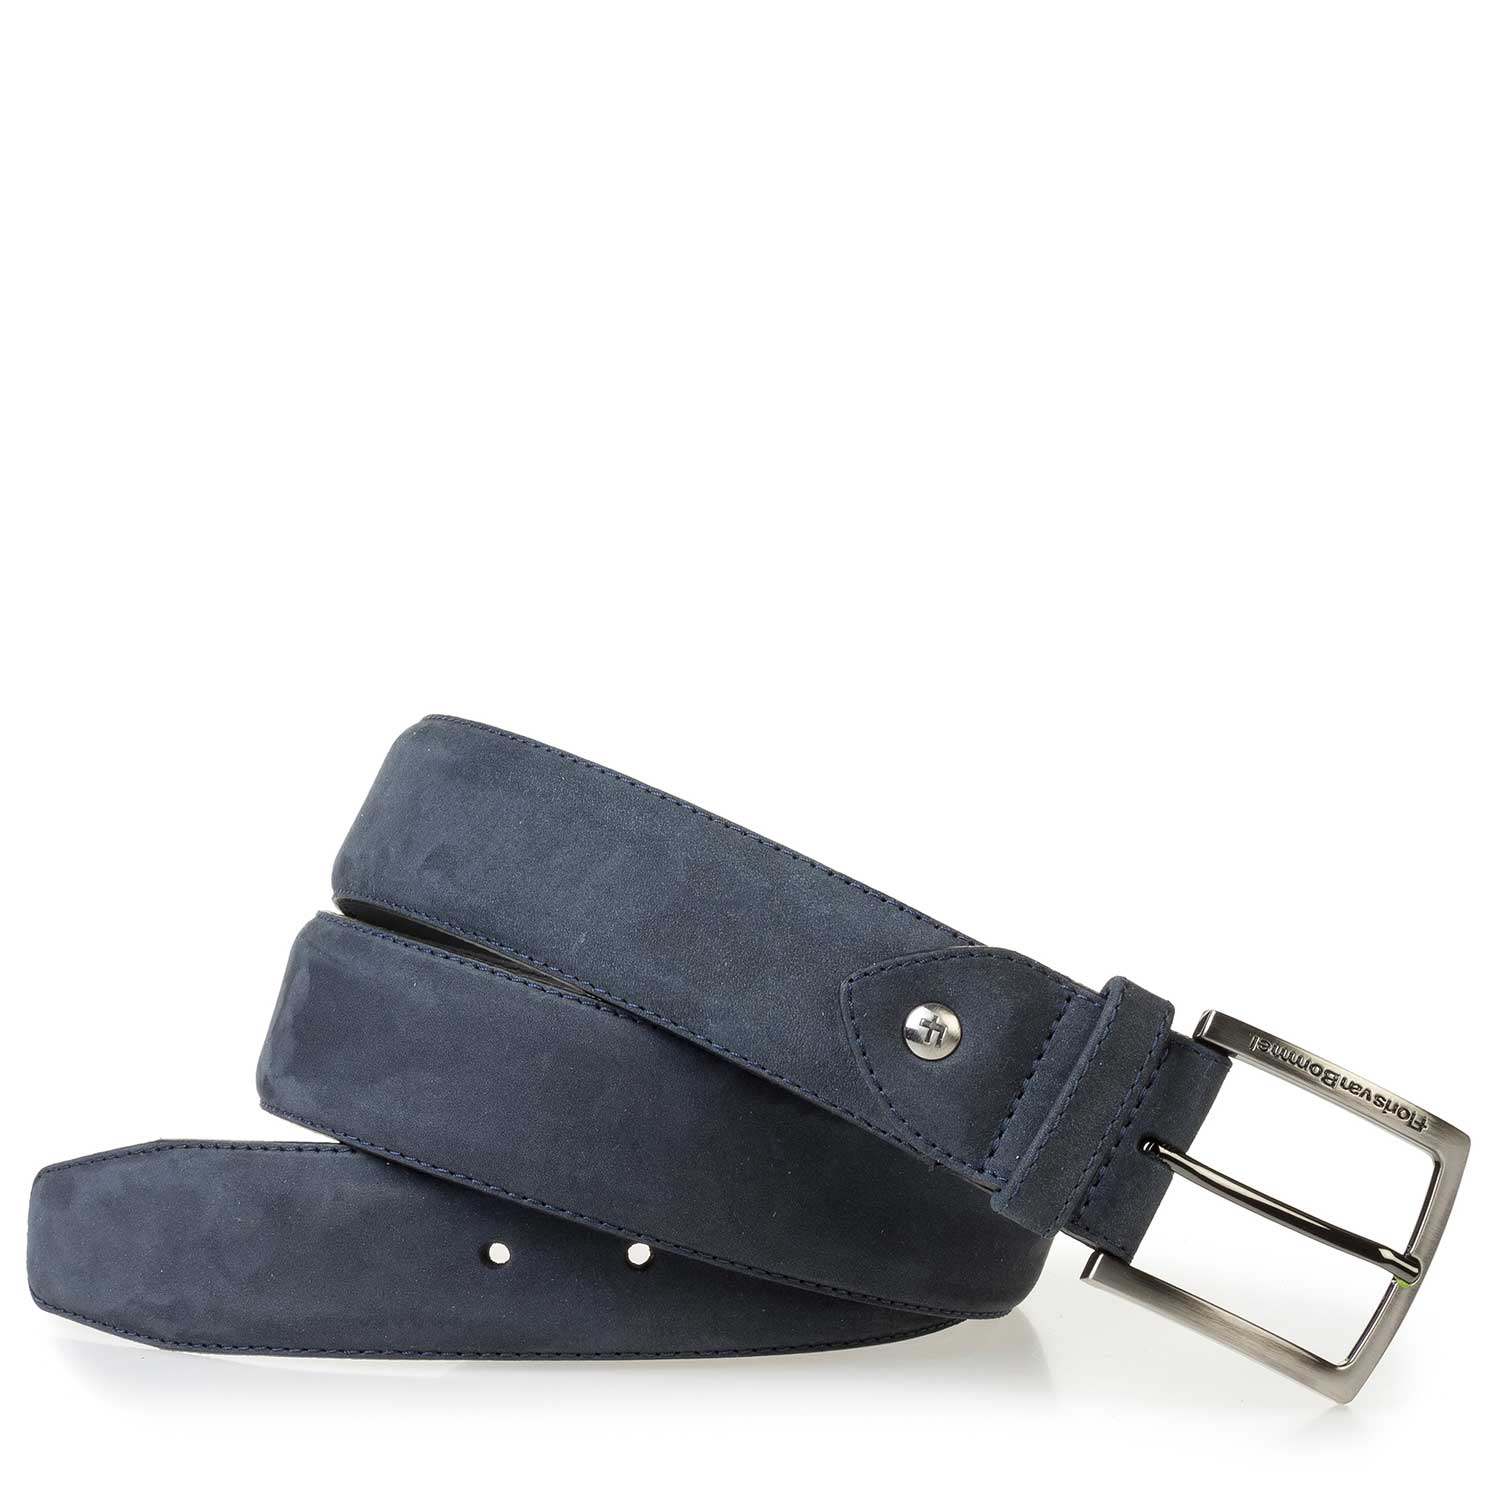 75189/86 - Blue nubuck leather belt